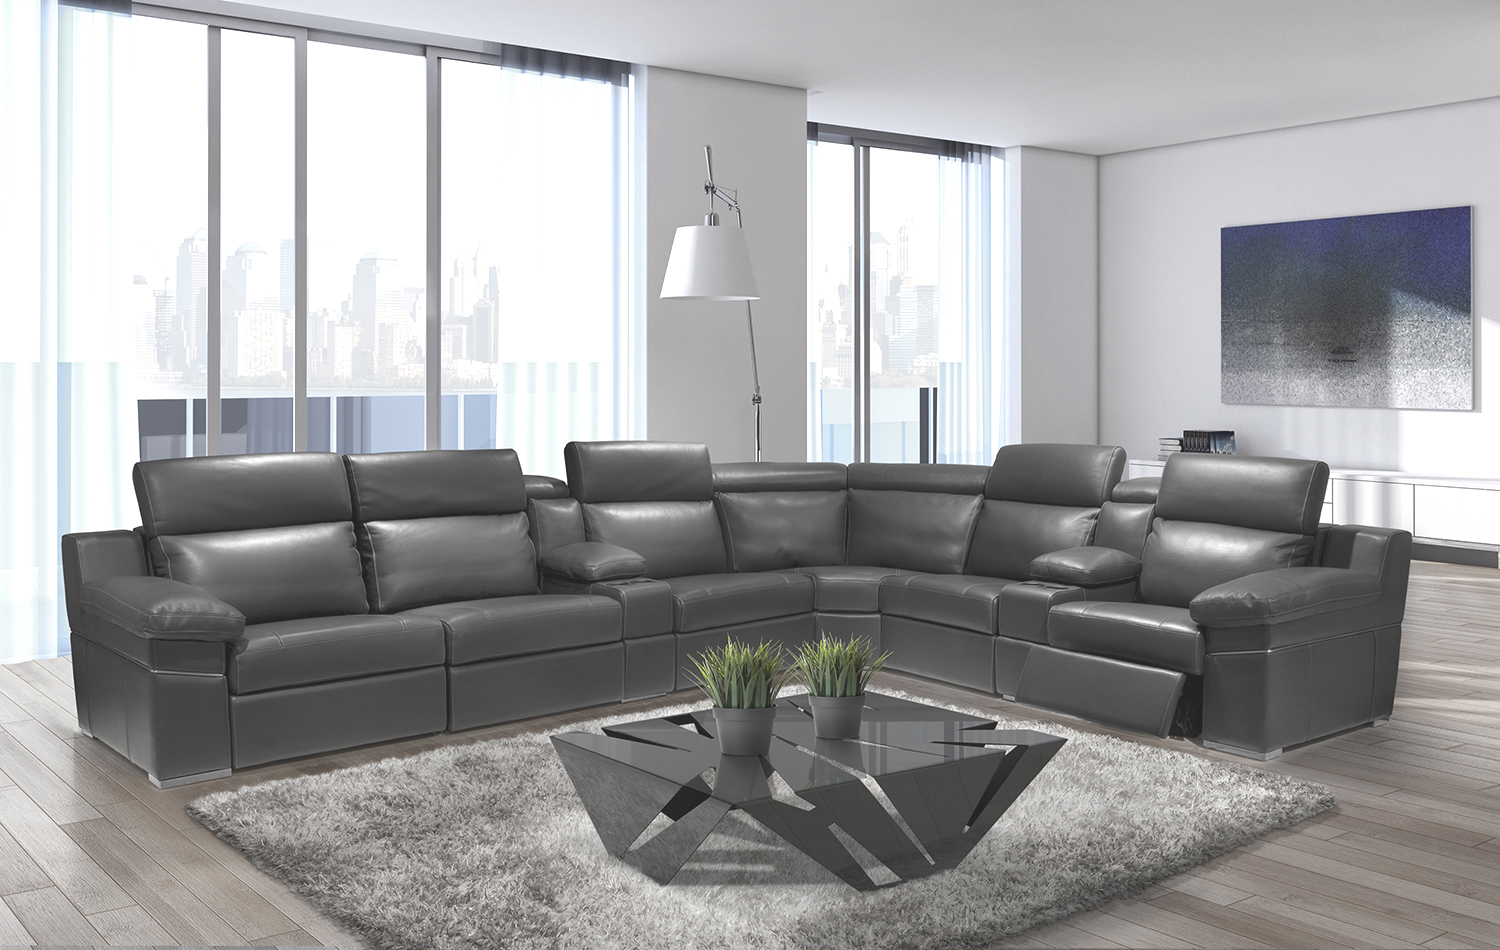 Ari modern sectional sofa reclining sectionals for Modern sectional sofas